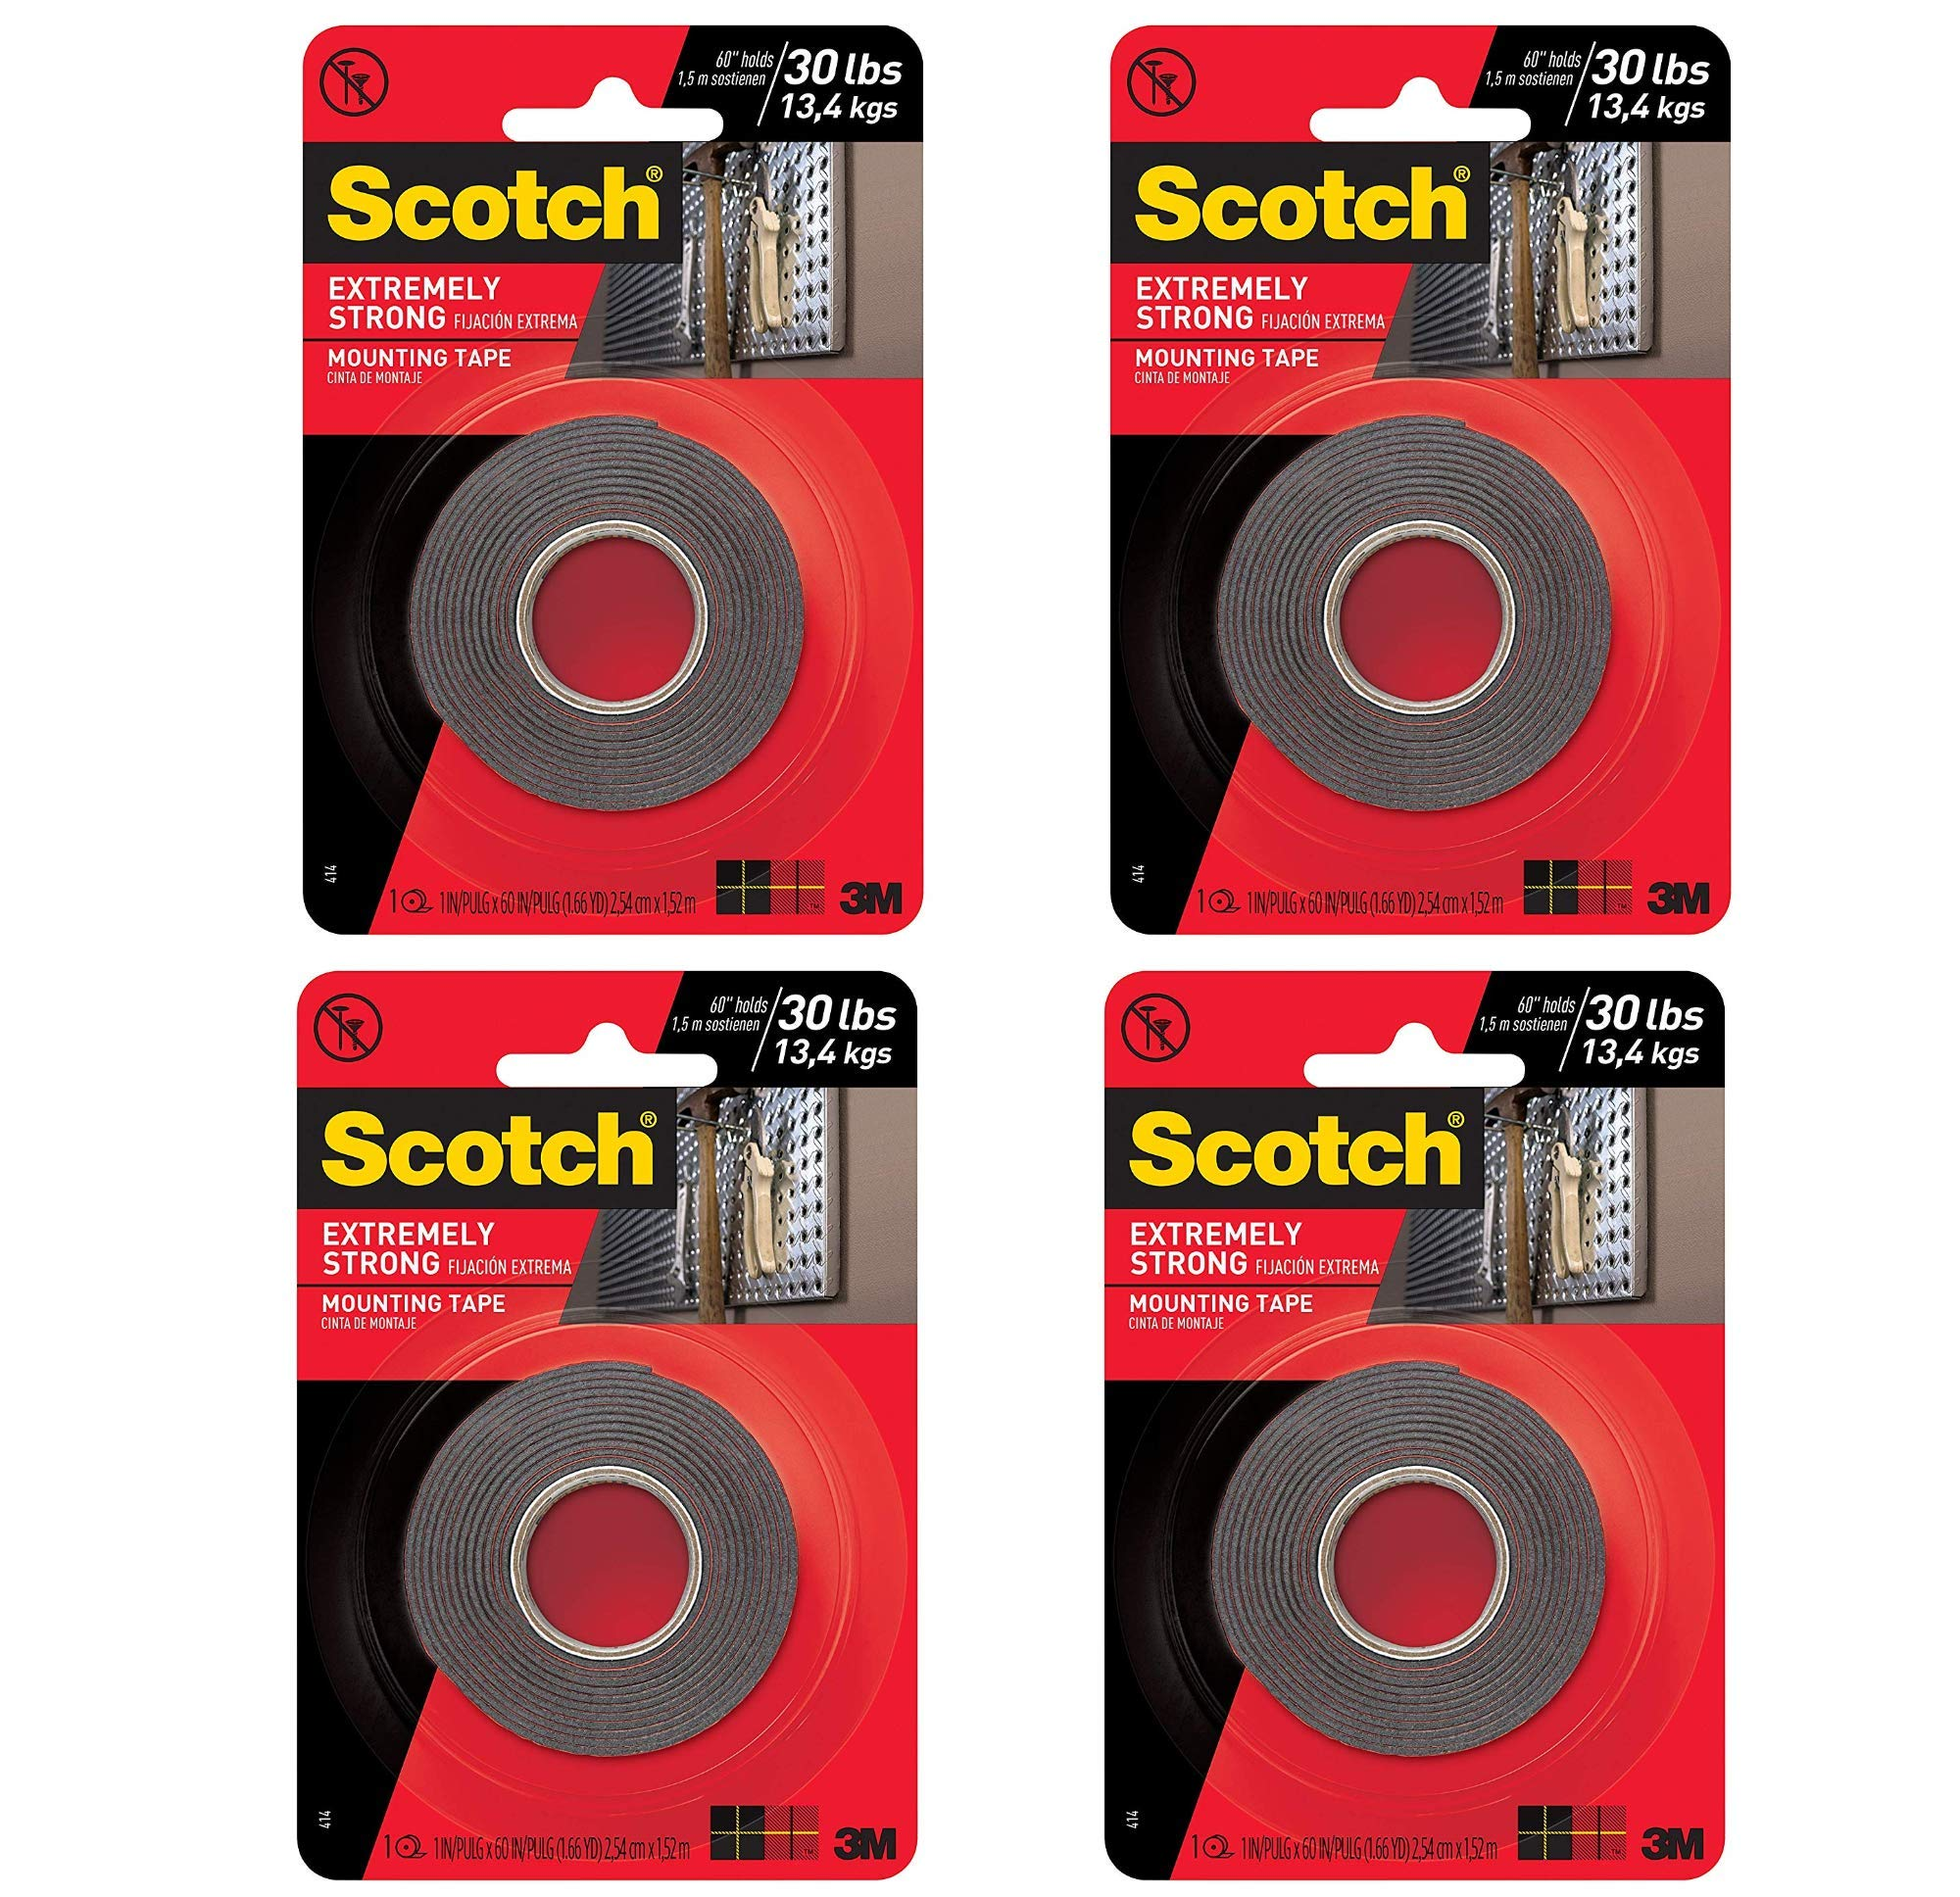 Scotch Extremely Strong Mounting Tape, 1-inch X 60-inches, Black, Holds up to 30 pounds, 1-Roll (414P) (4) by Scotch Brand